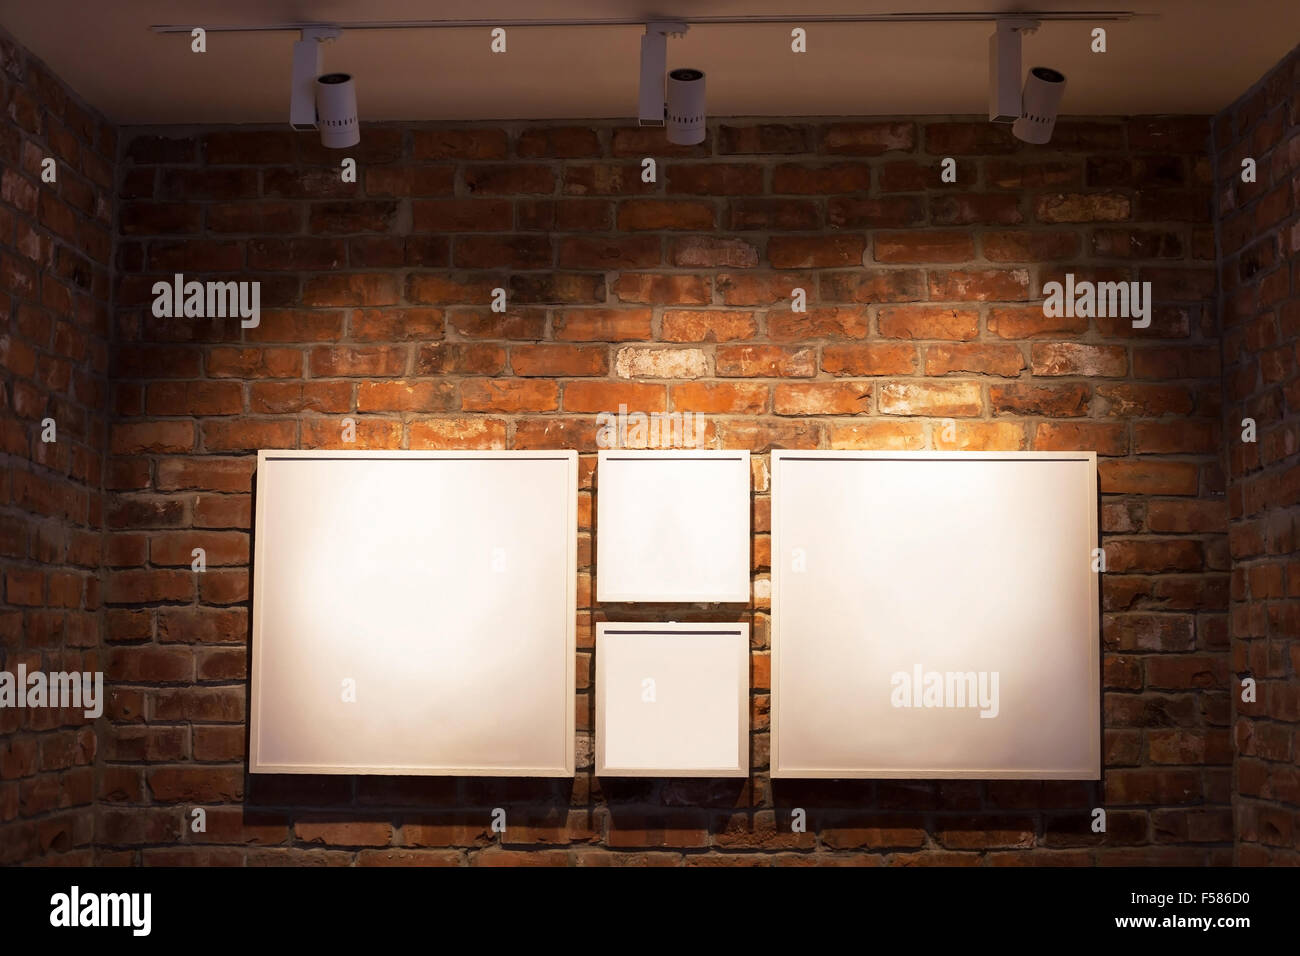 blank white boards in frames on brick wall, abstract interior background with place for text - Stock Image